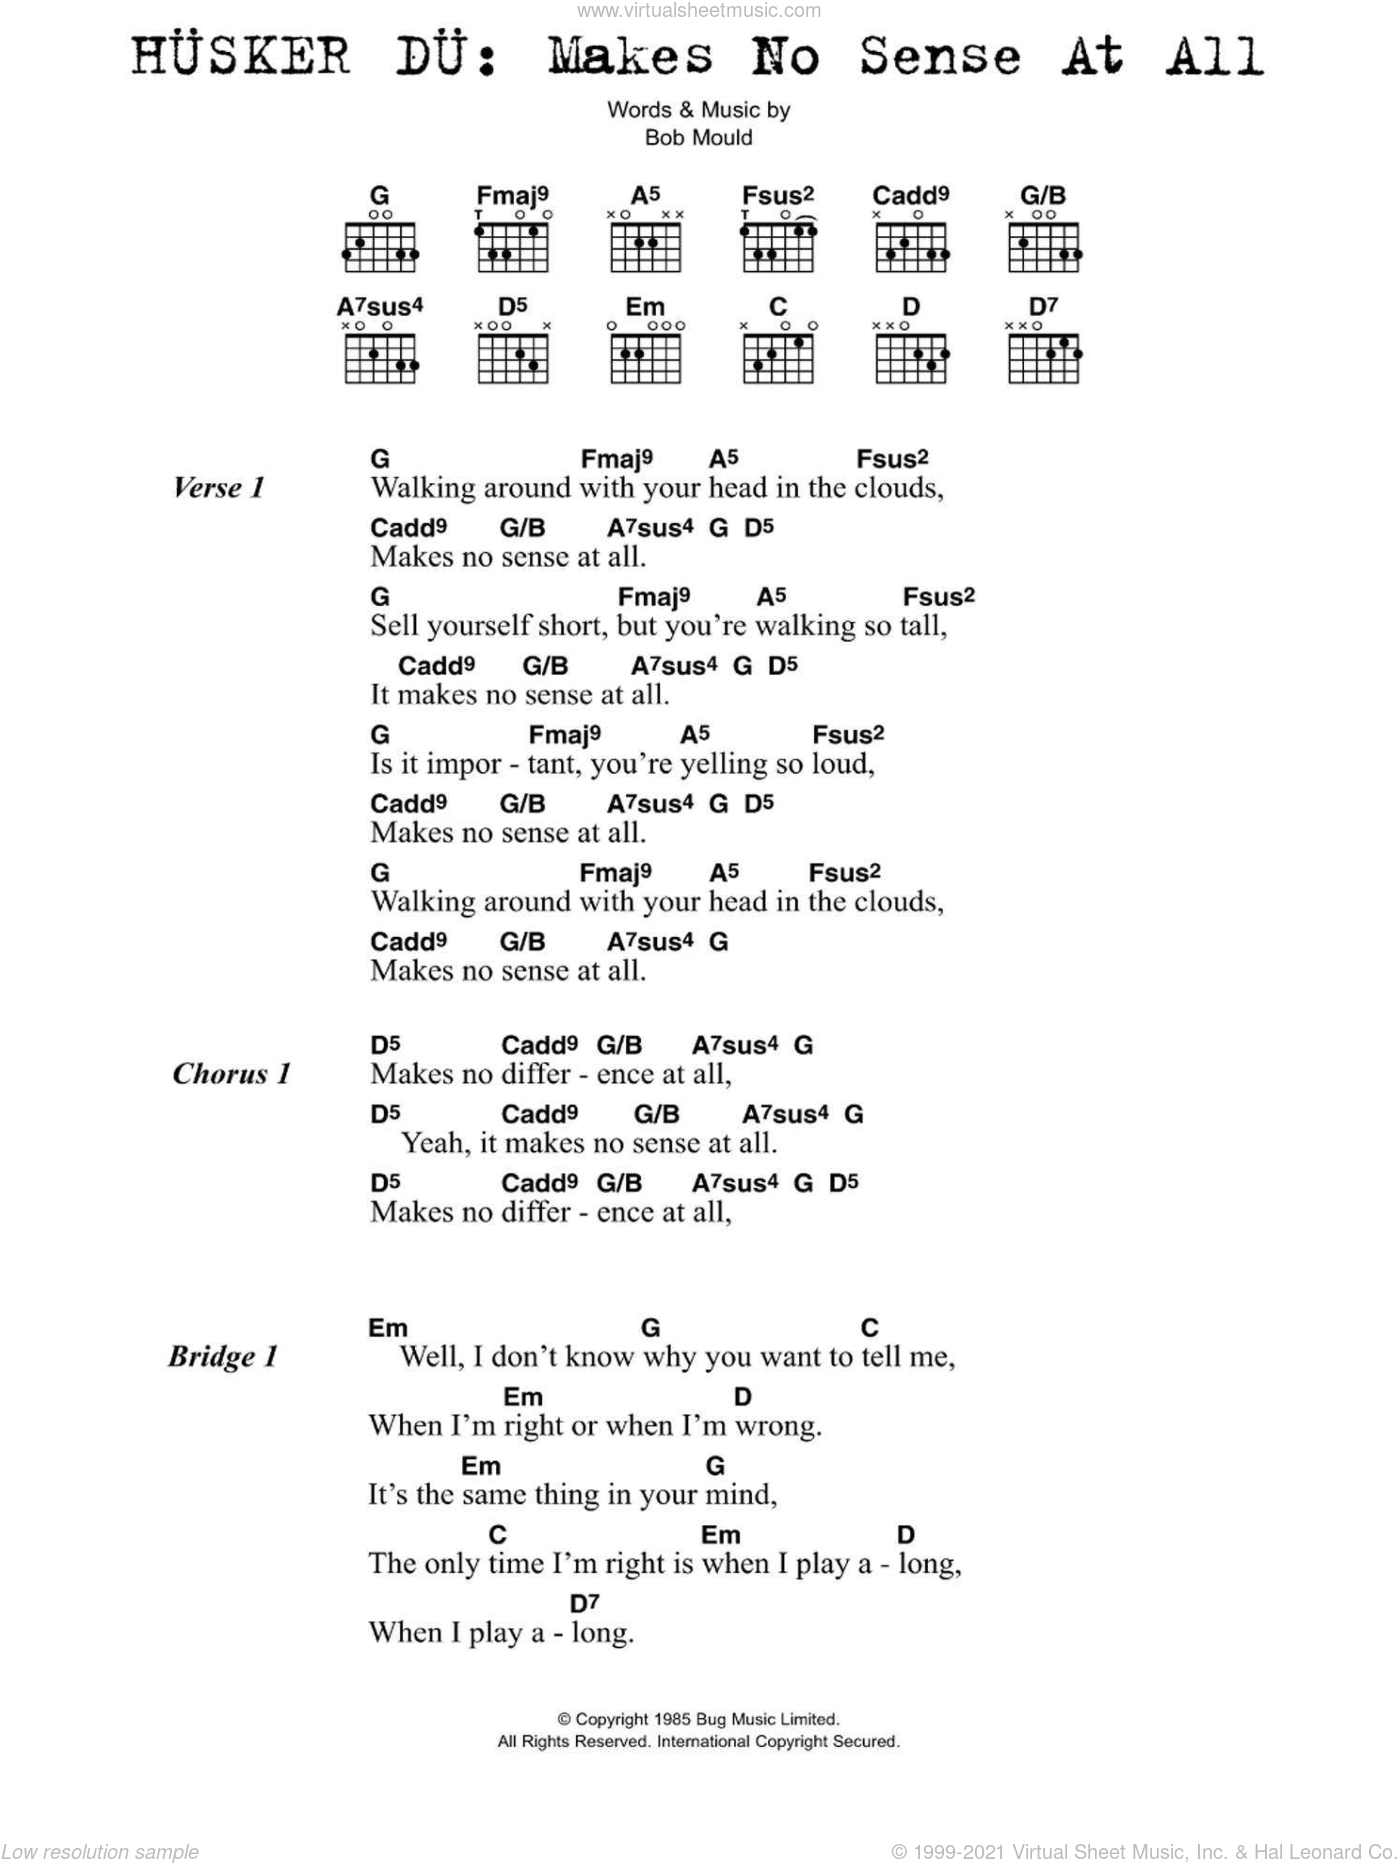 Makes No Sense At All sheet music for guitar (chords) by Bob Mould